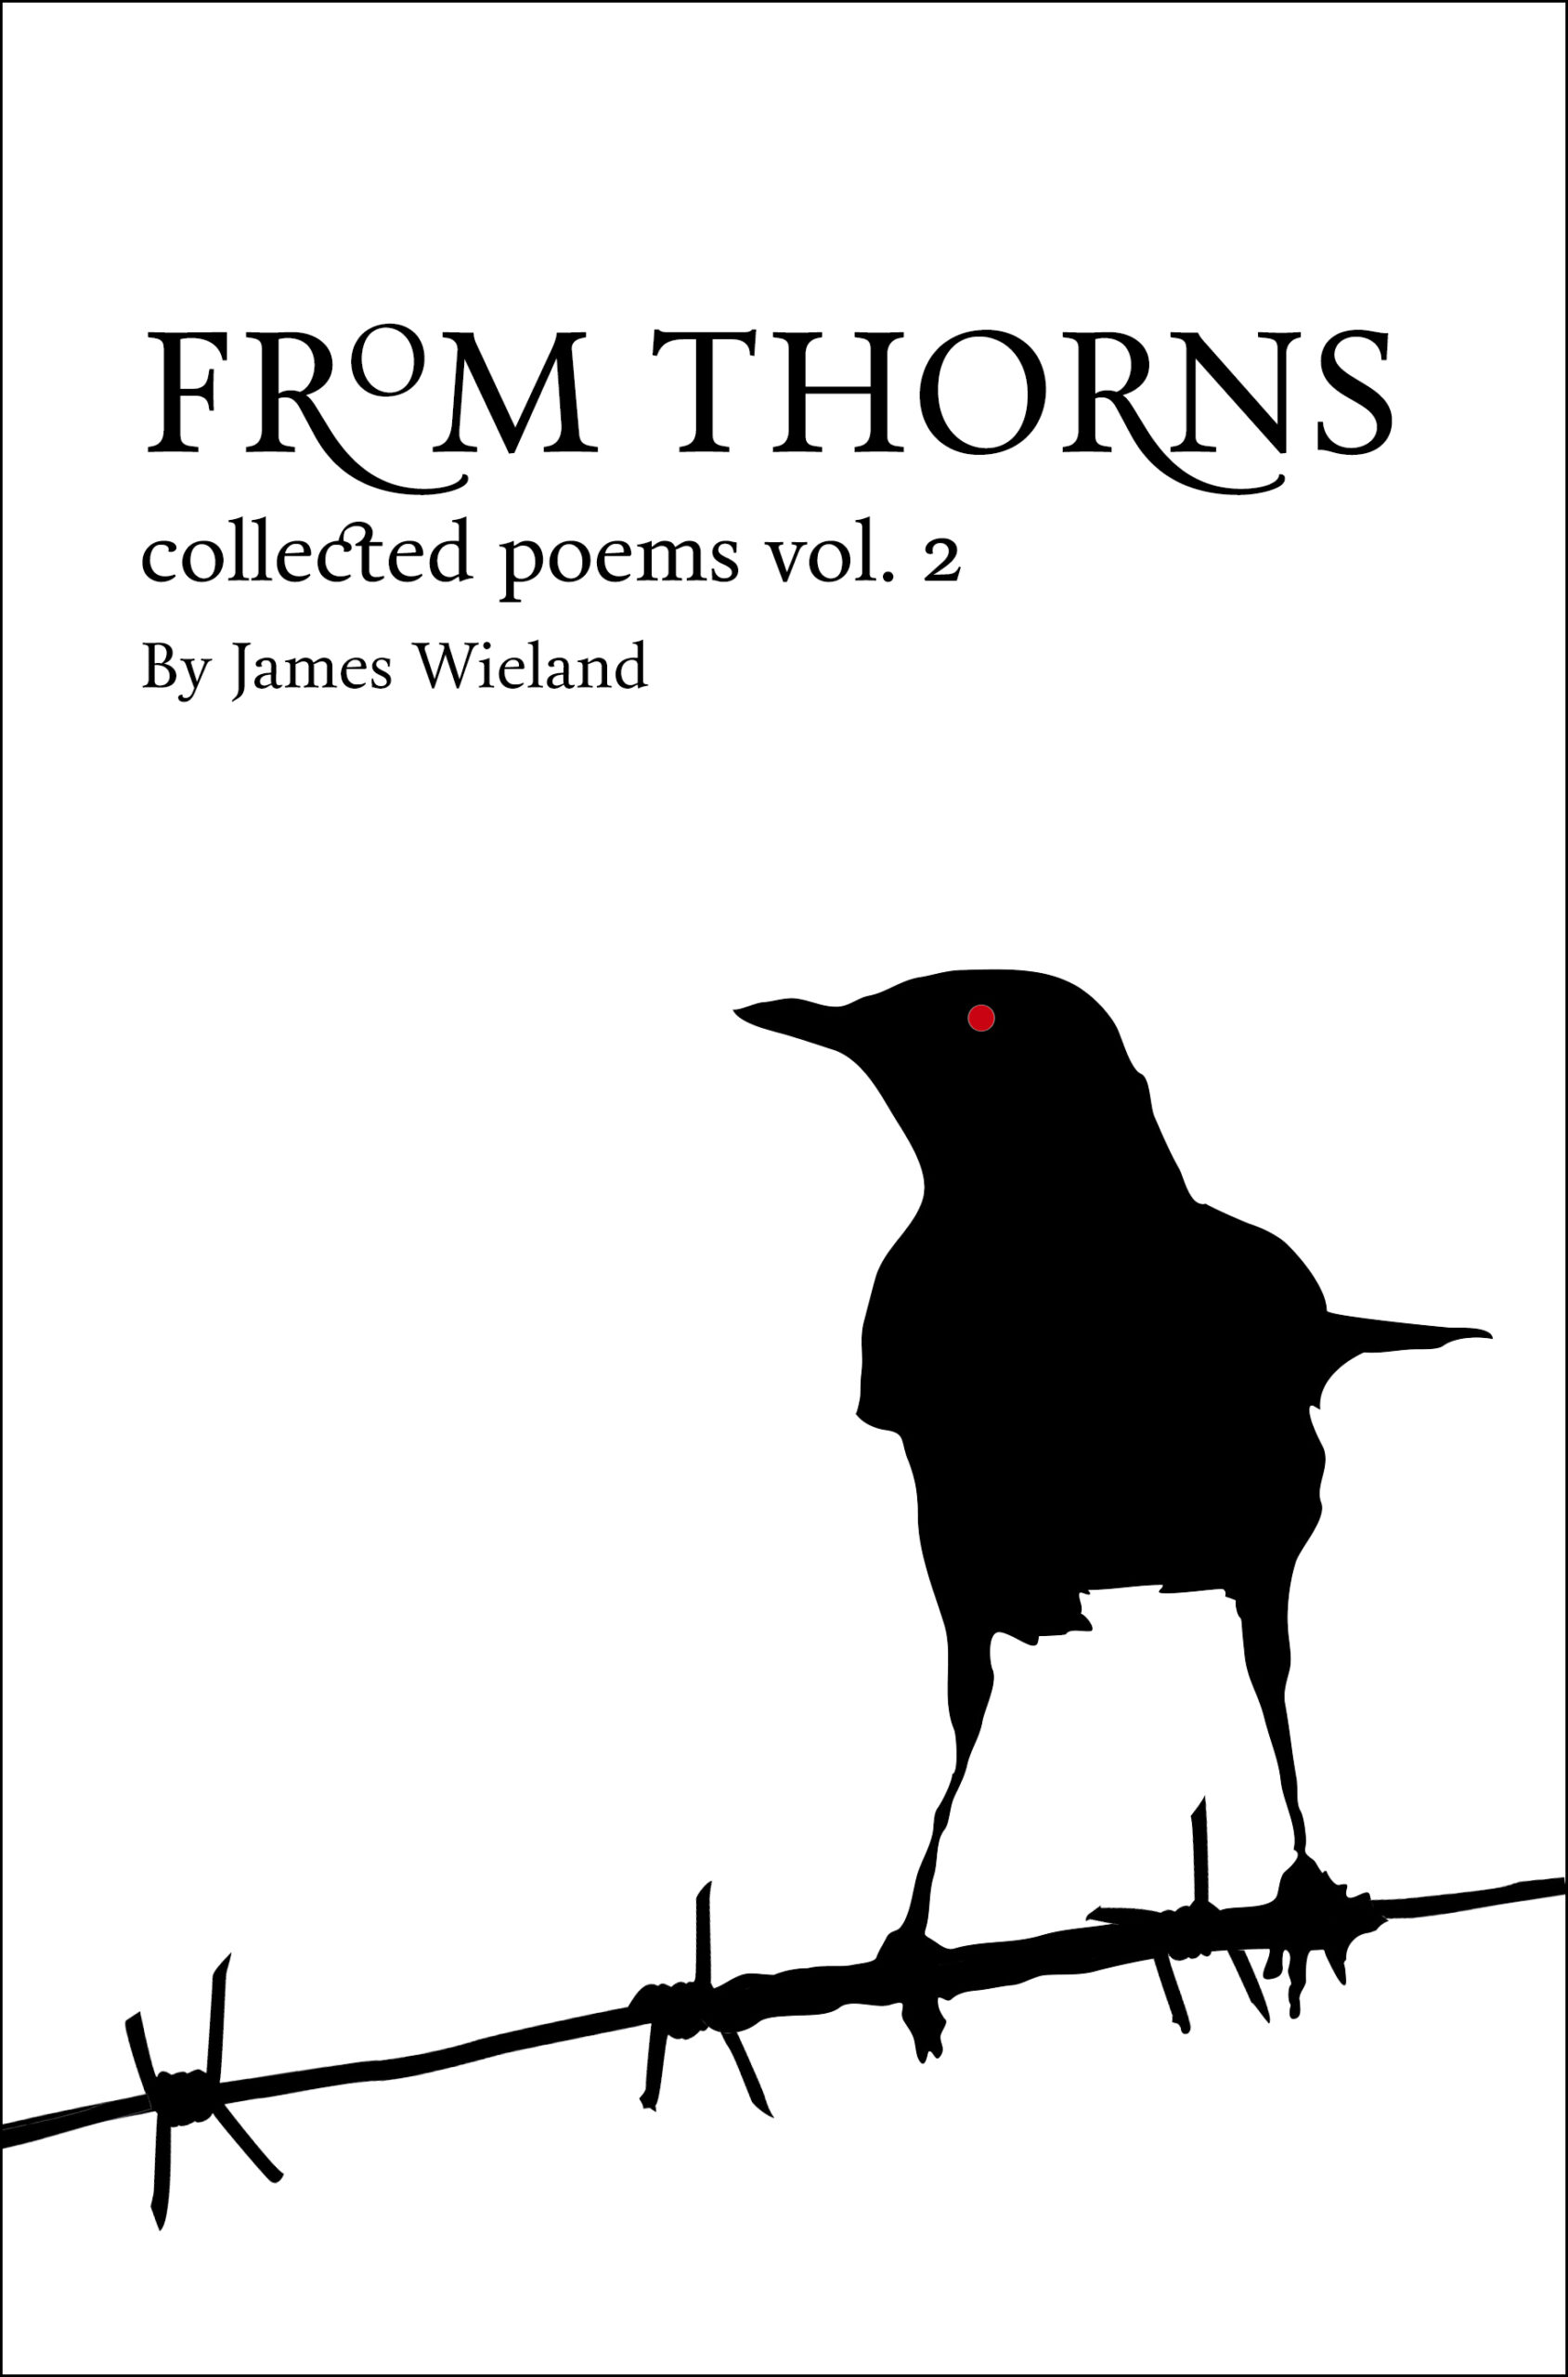 from thorns by james wieland book of poetry arizona maine